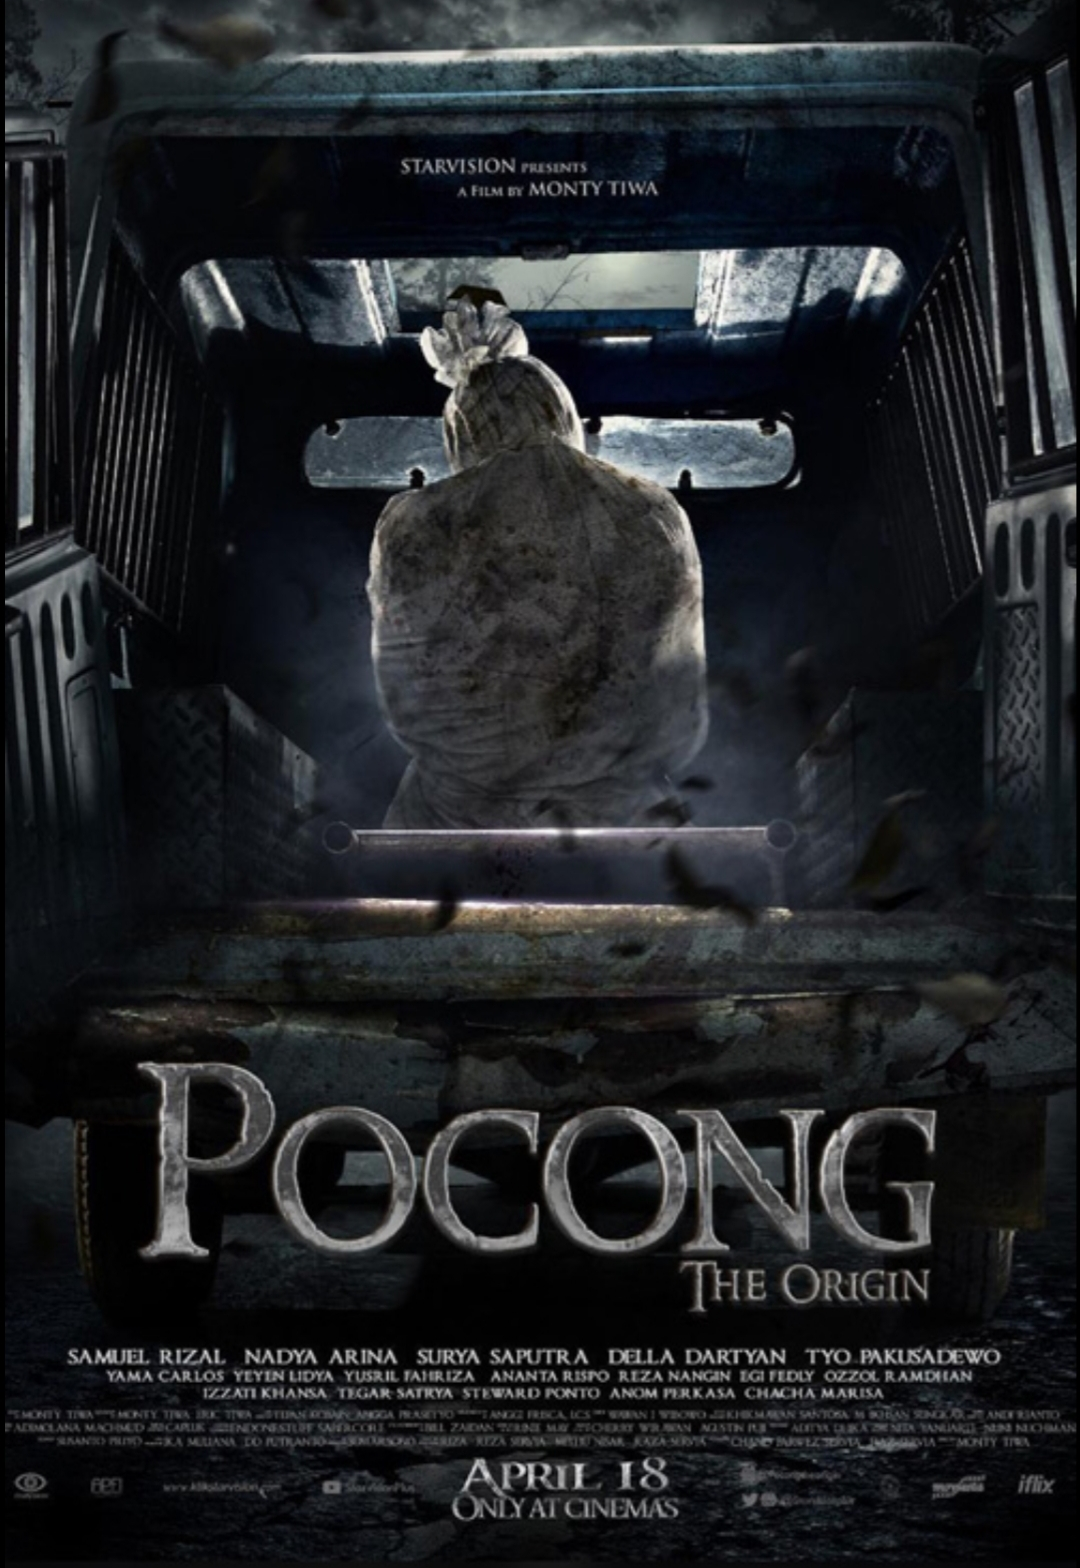 Download Film Pocong The Origin (2019) Full Movie Indonesia